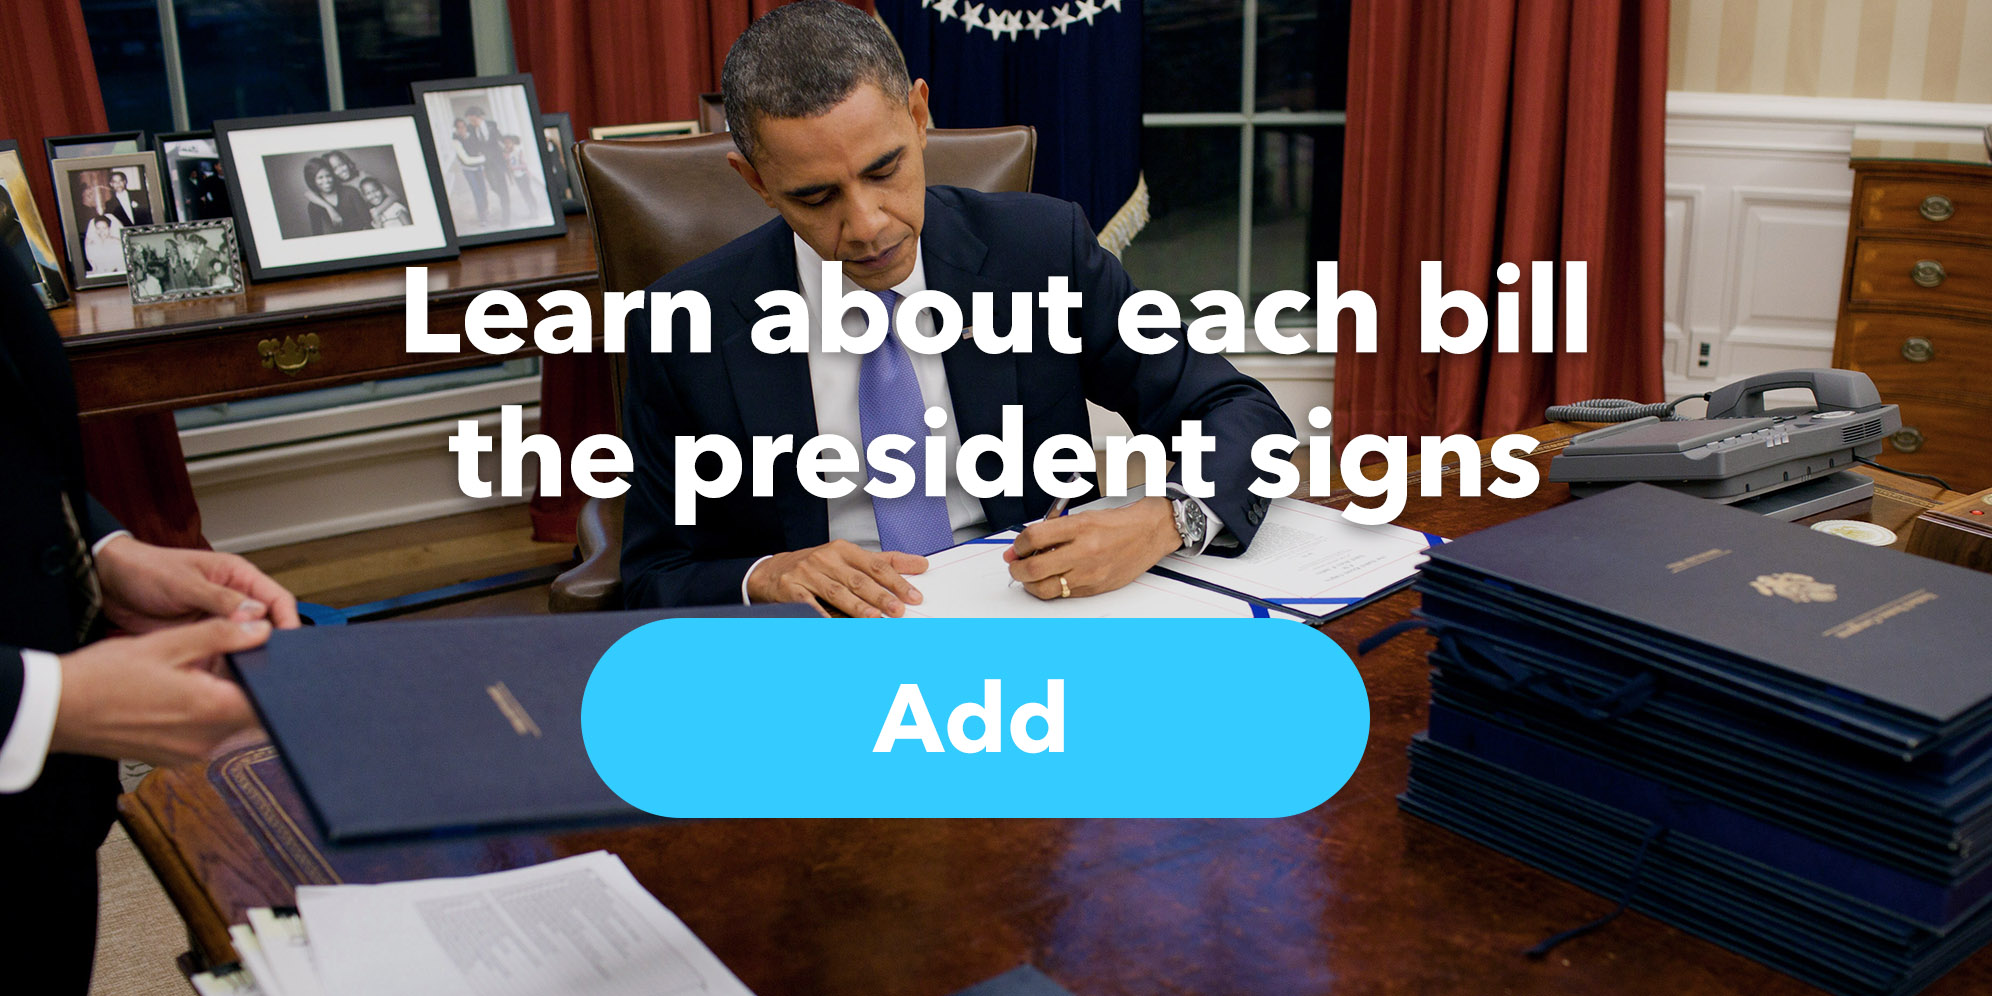 Learn about each bill the president signs